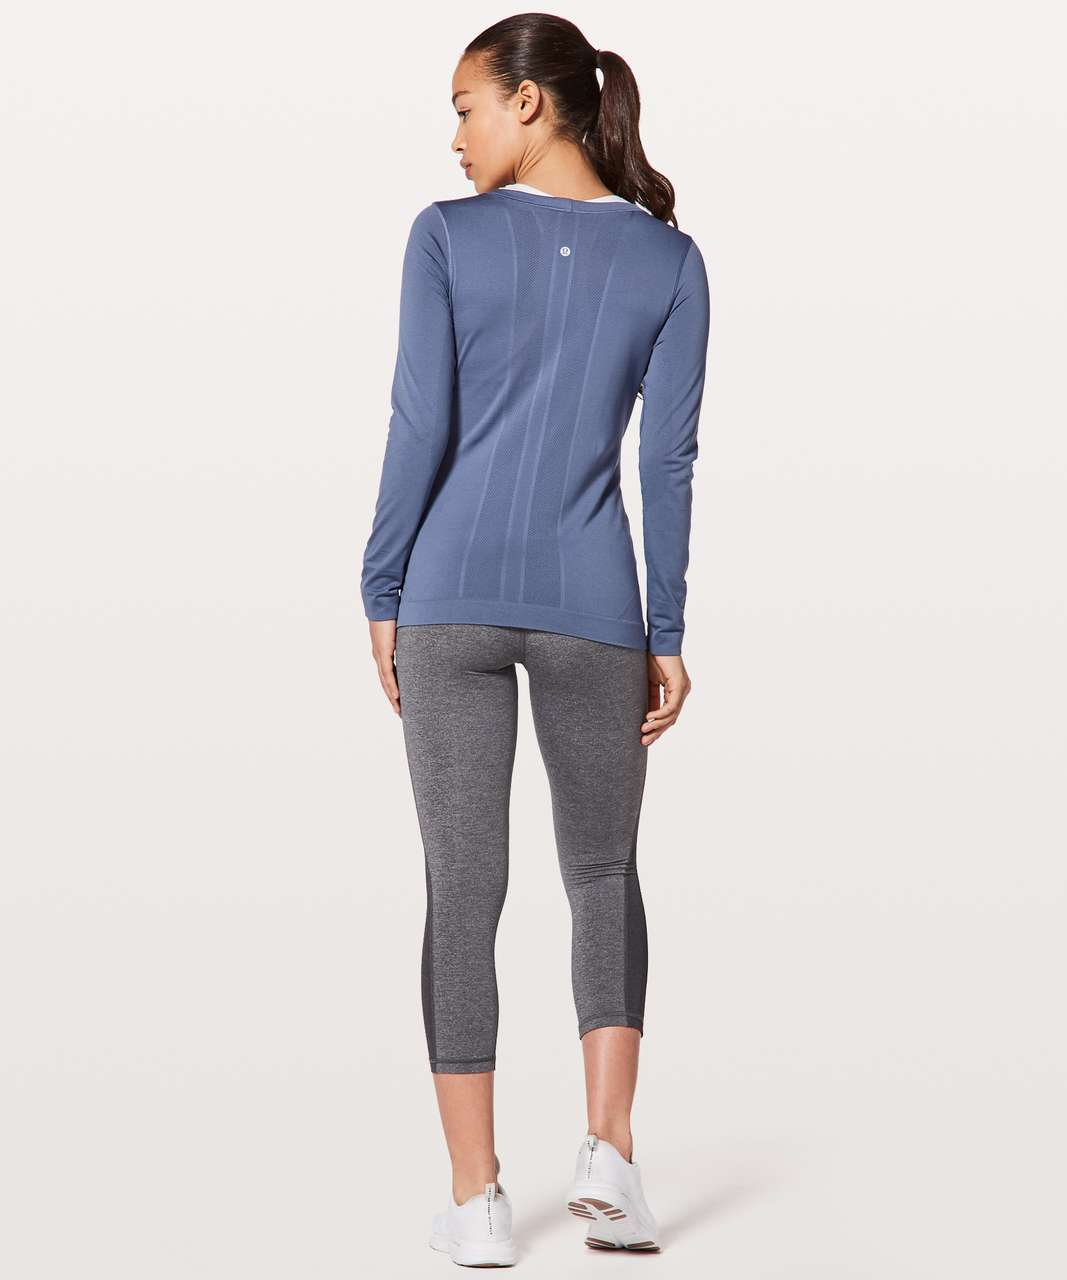 Lululemon Swiftly Tech Long Sleeve (Breeze) *Relaxed Fit - Brilliant Blue / Brilliant Blue